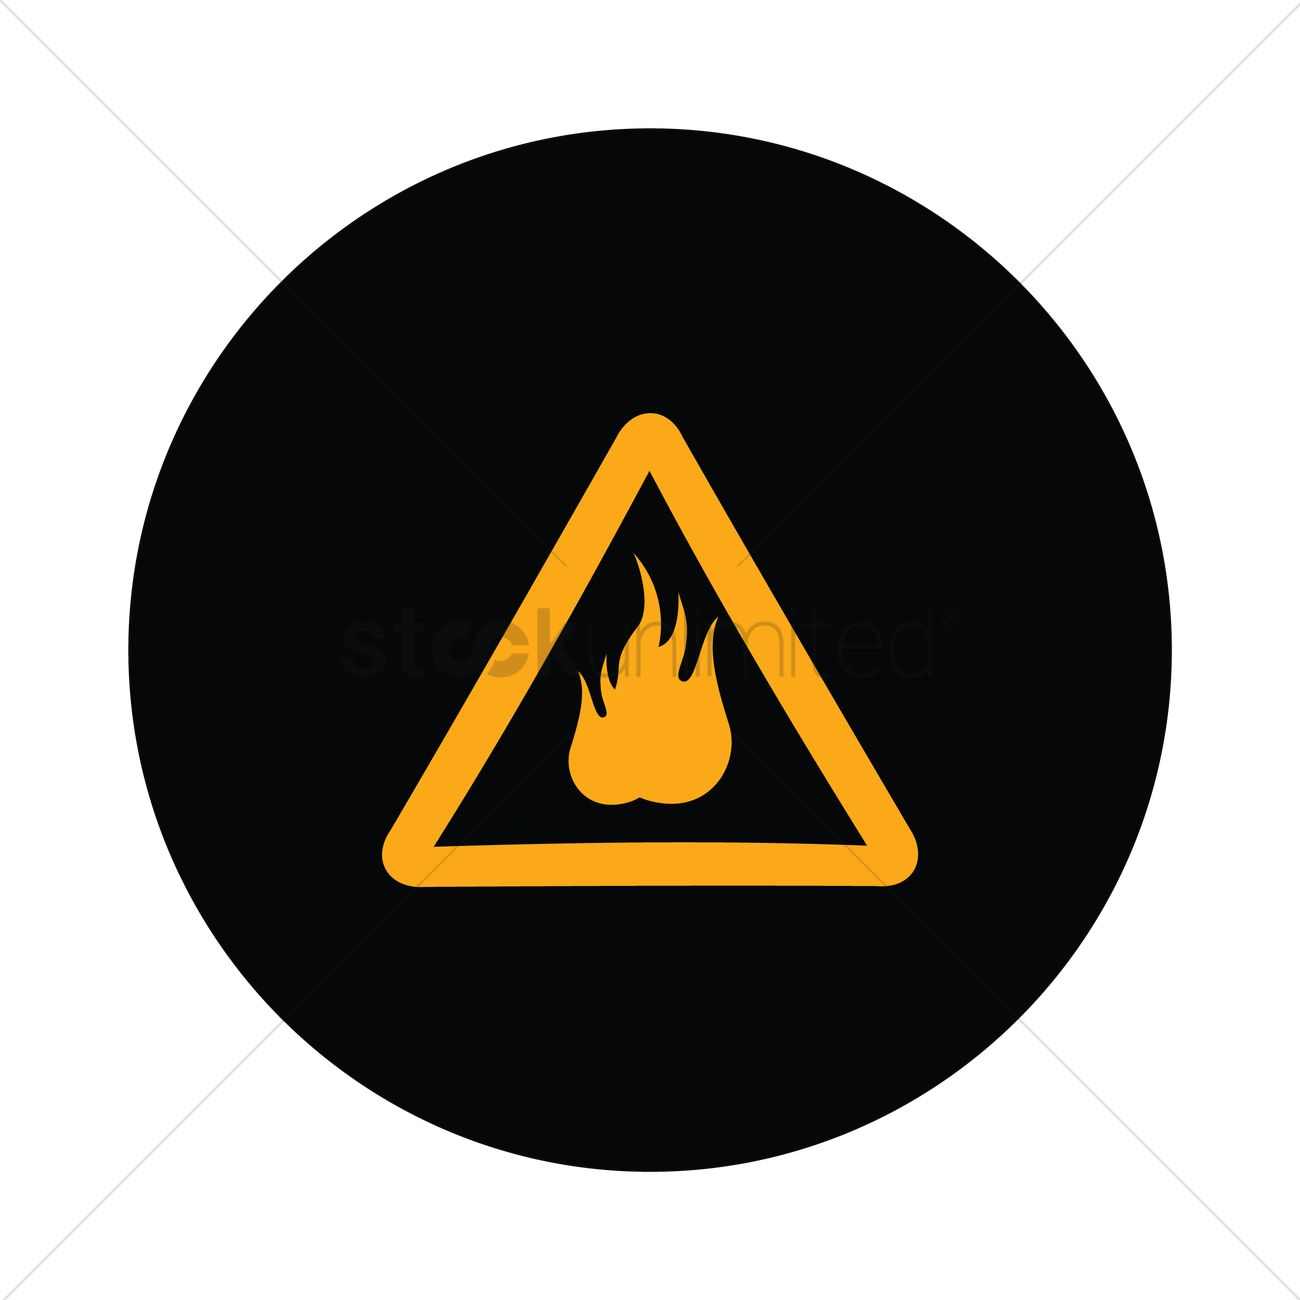 Highly flammable sign vector image 1350940 stockunlimited highly flammable sign vector graphic buycottarizona